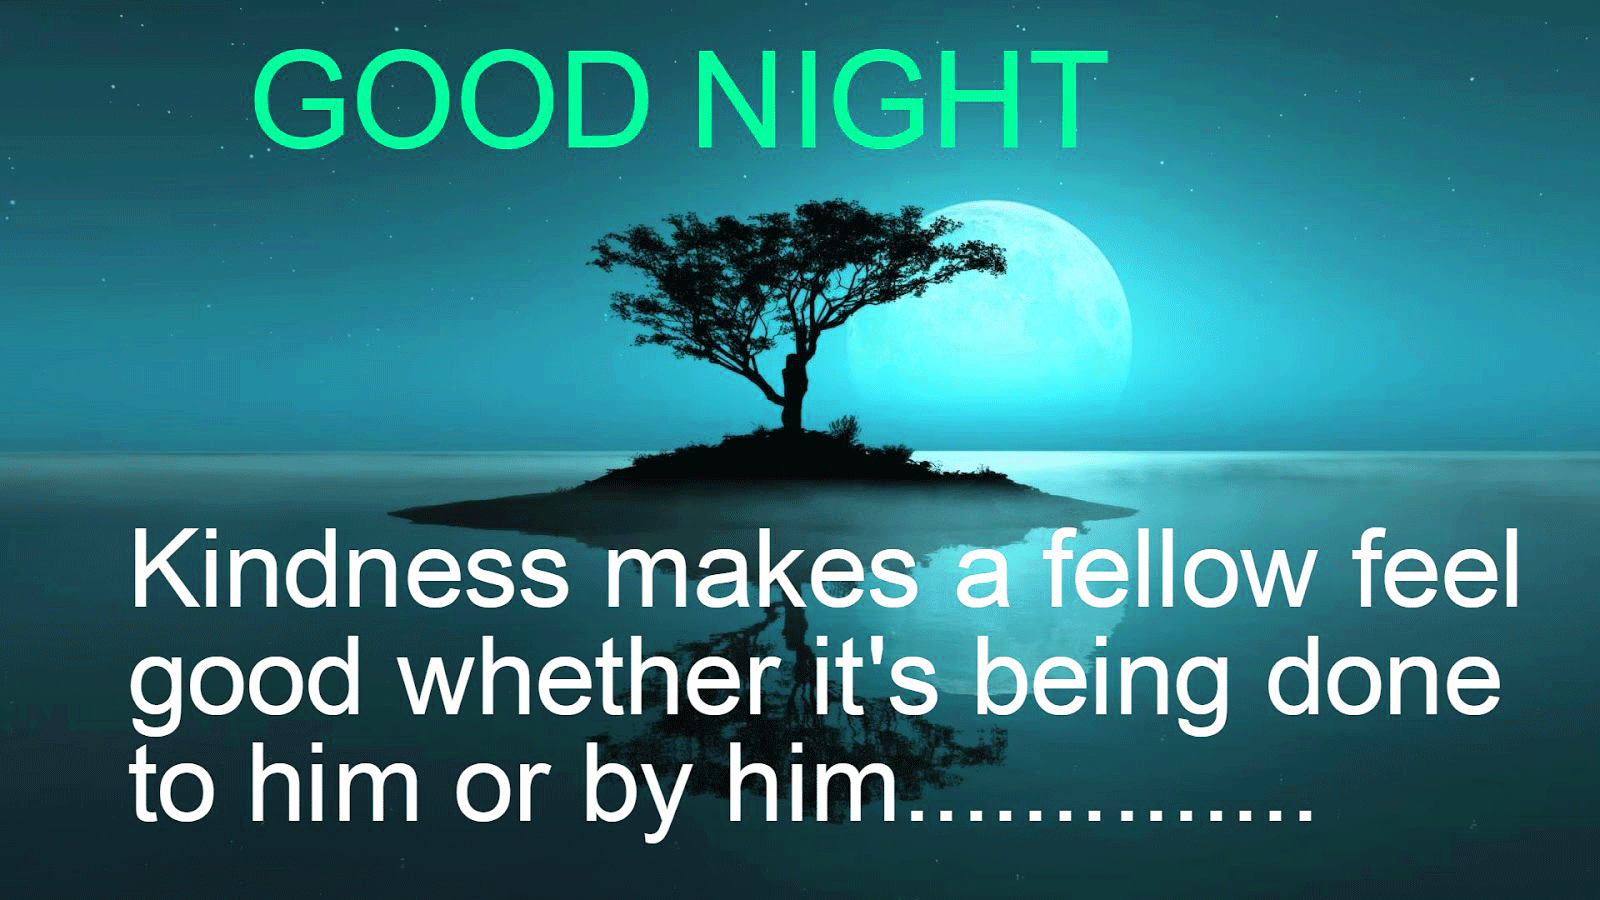 Wallpaper download english - Good Night Greetings Quotes Wishes Hd Wallpapers Free Download